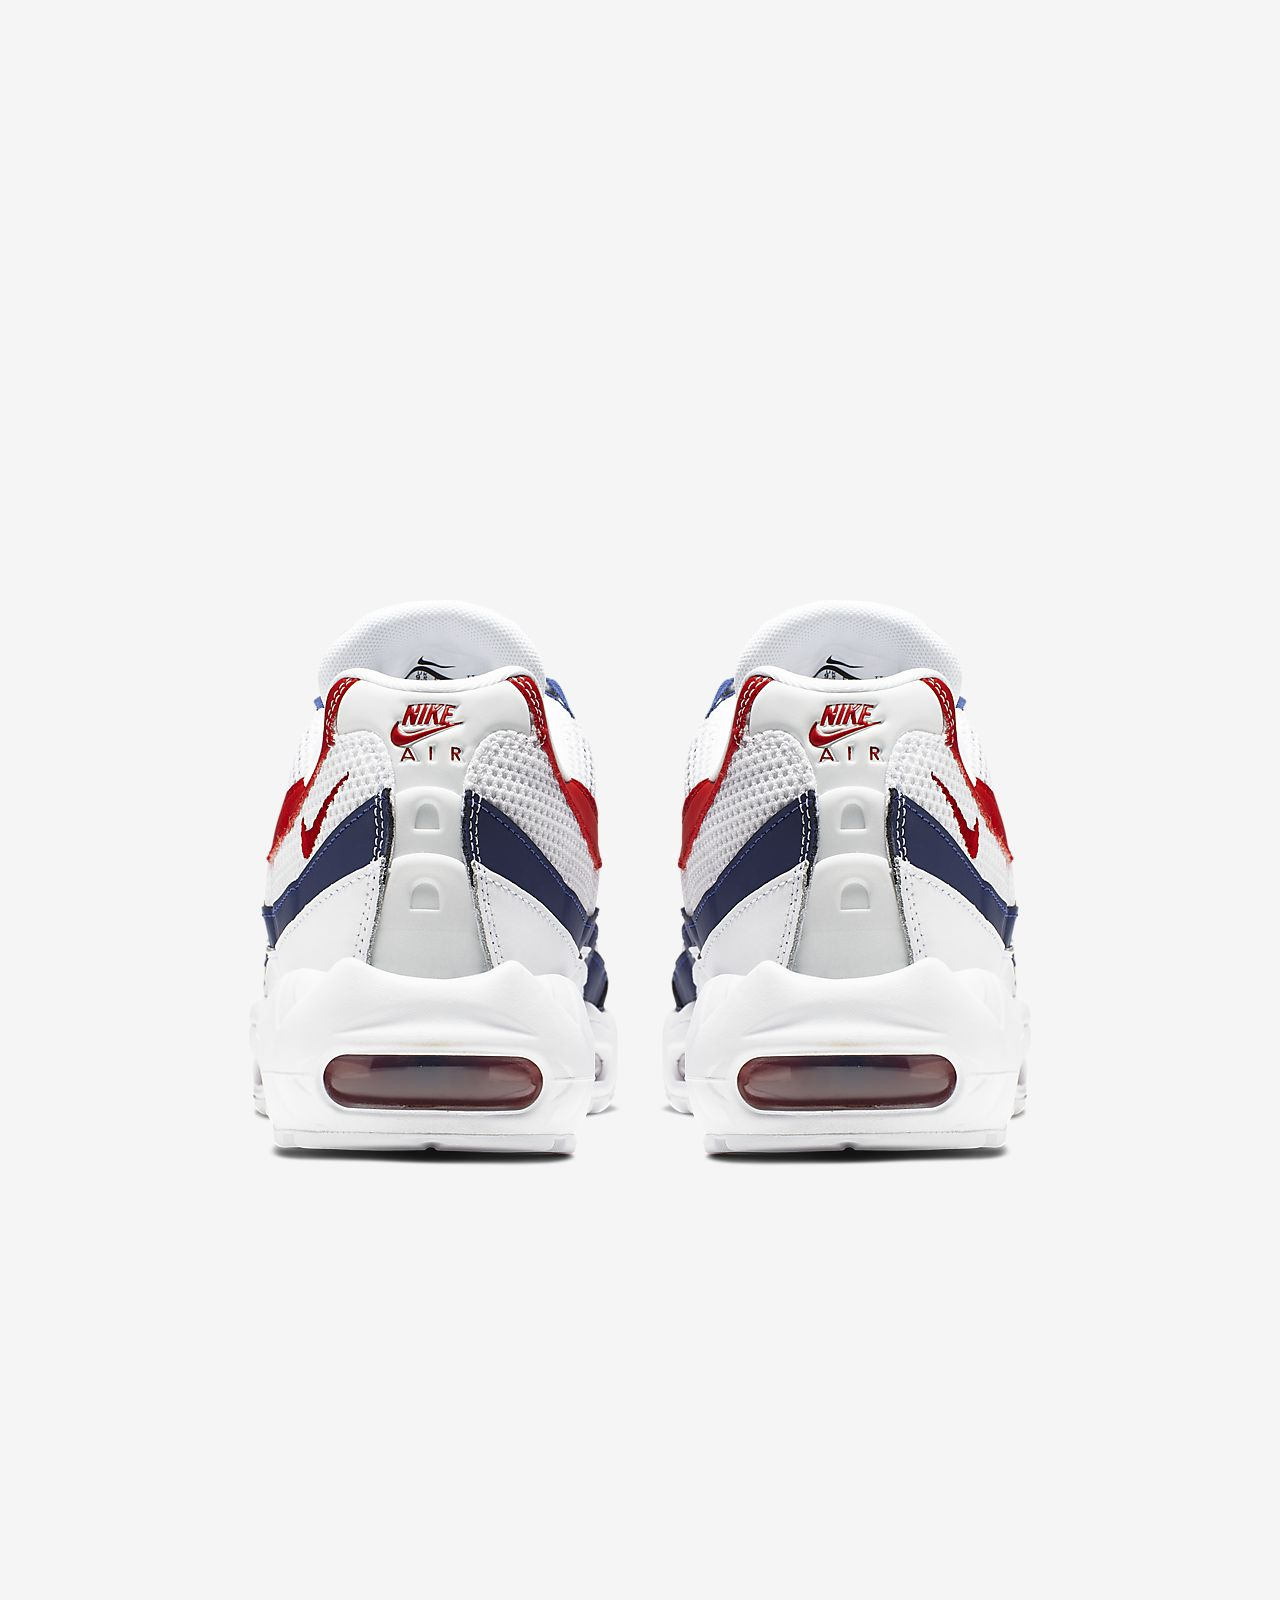 Nike Air Max 95 USA White Gym Red Royal Blue CJ9926 100 Men's Running Shoes Sneakers